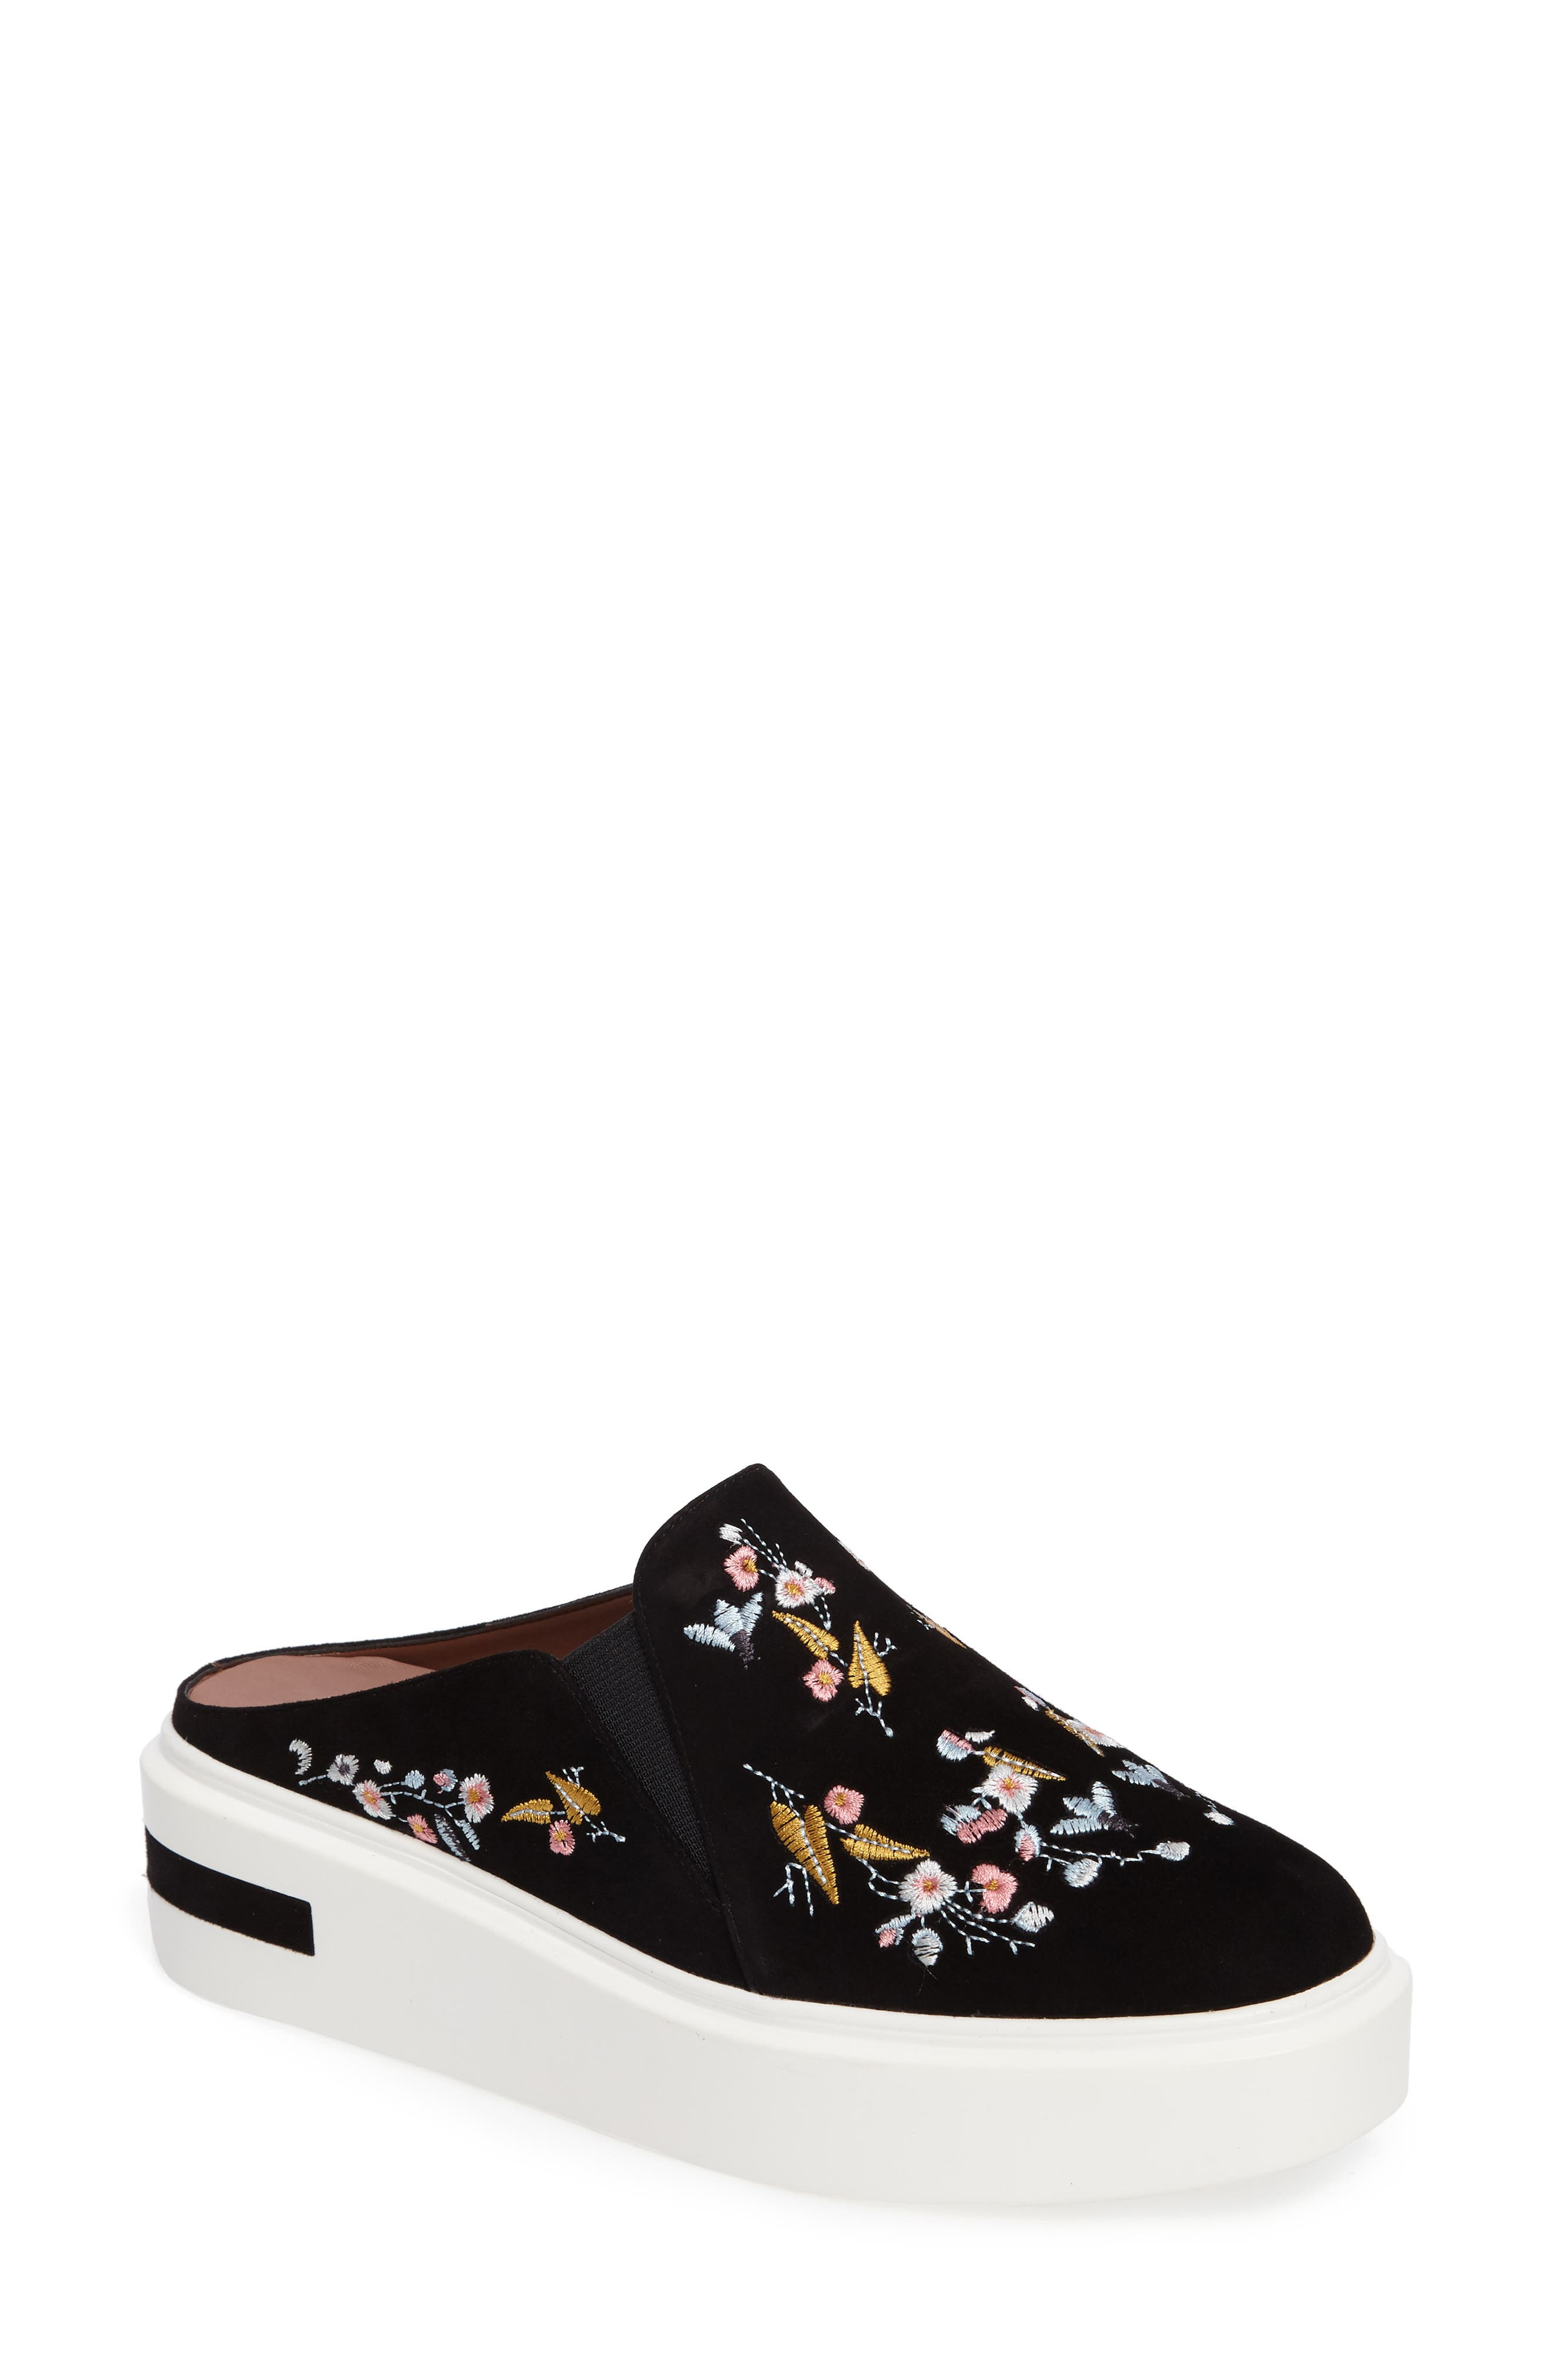 Fab II Embroidered Platform Sneaker,                             Main thumbnail 1, color,